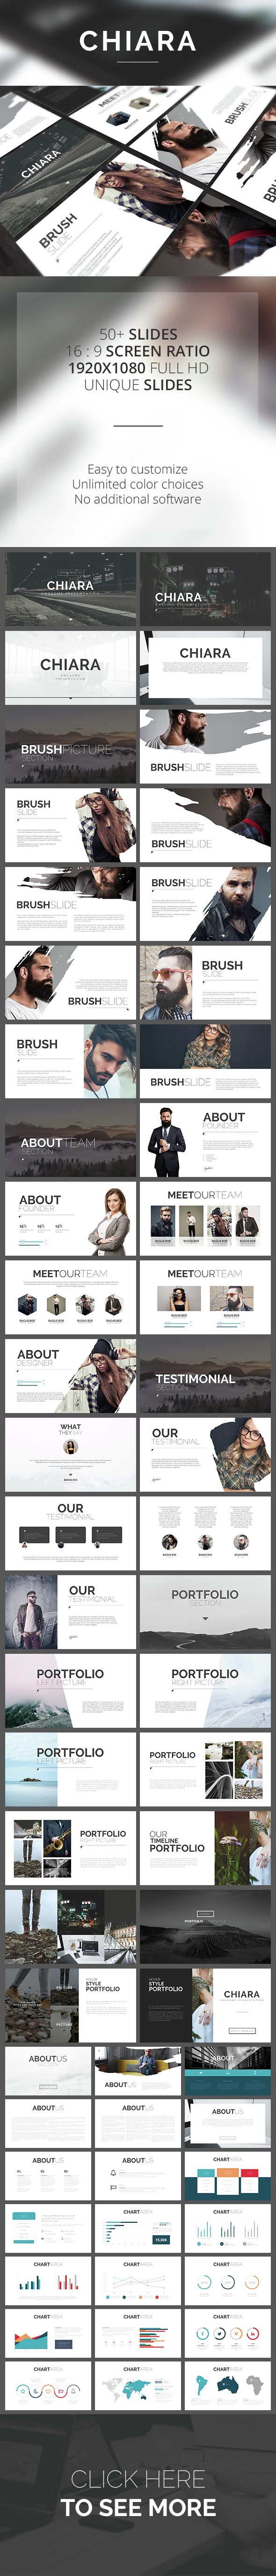 Chiara PowerPoint Template (PowerPoint Templates)